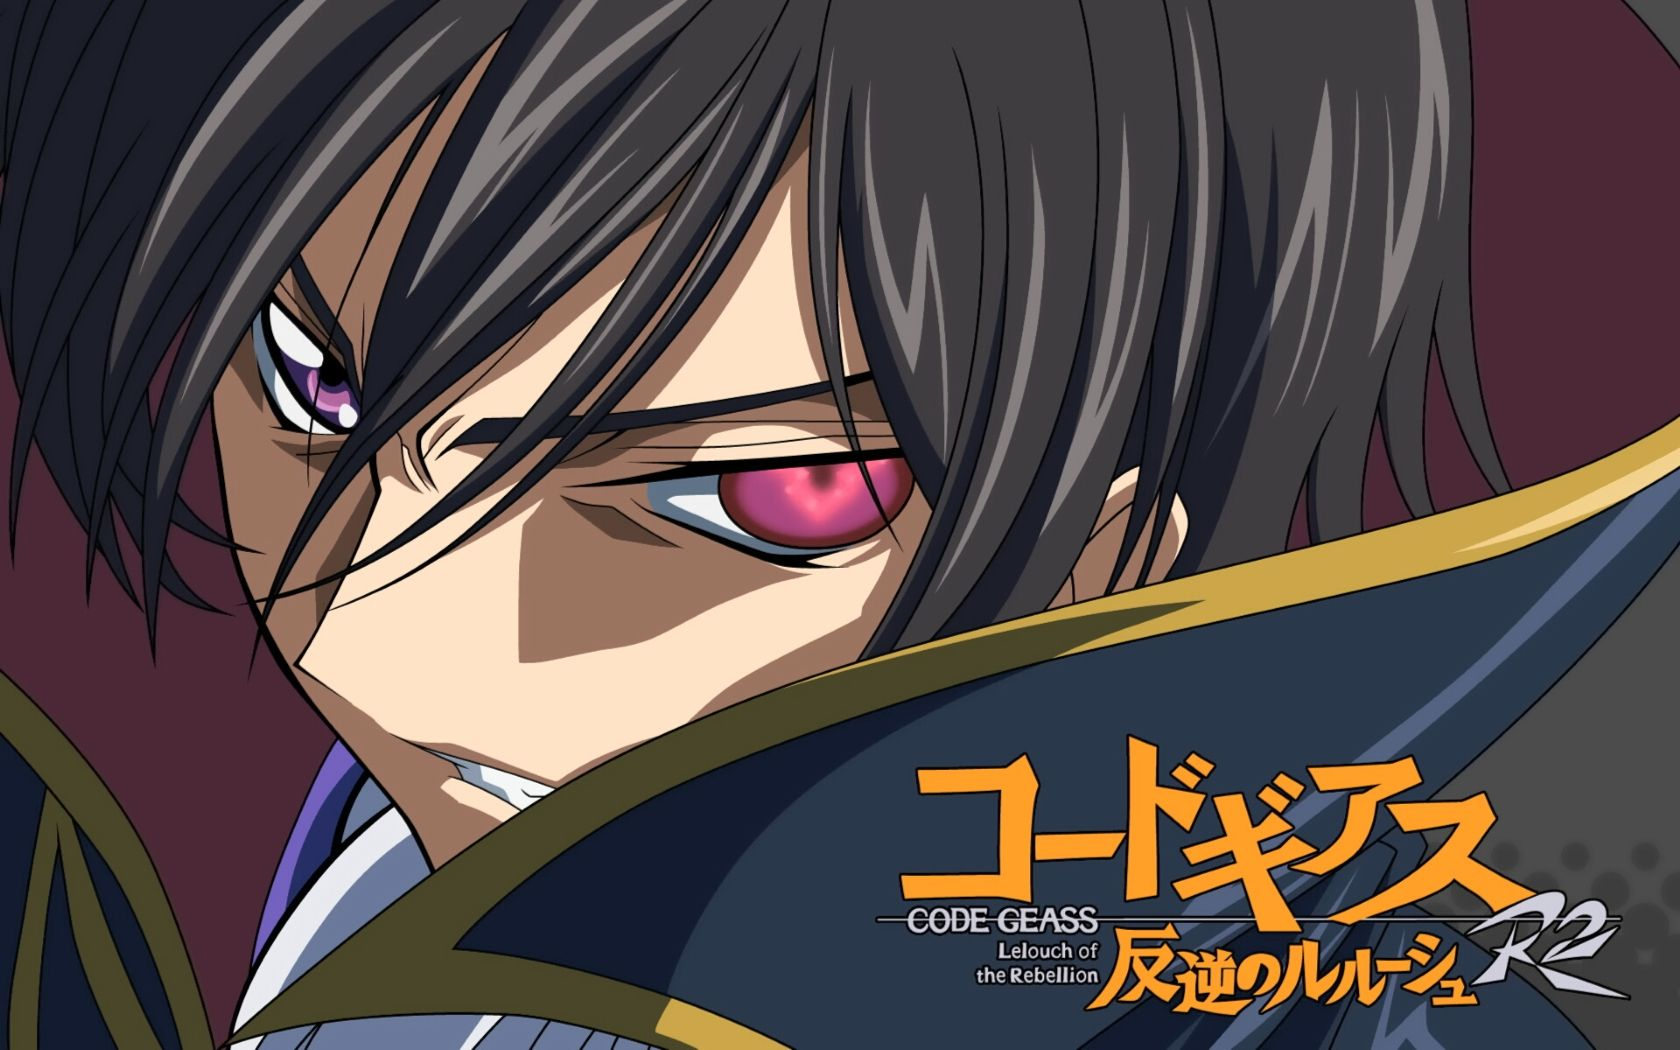 Konachan.com - 34819 code_geass lelouch_lamperouge